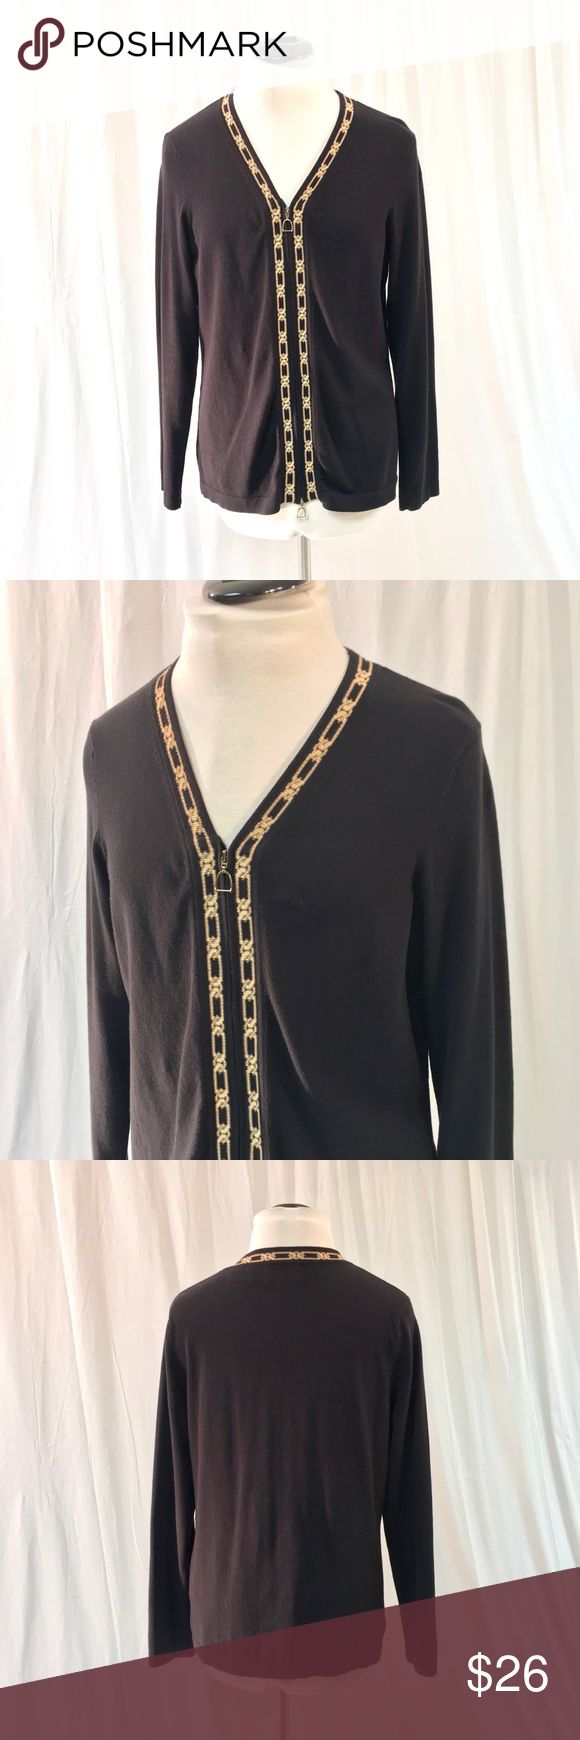 EP Pro Black & Gold Zip Sweater Super soft zip up sweater by EP Pro! Very good condition, women's size medium. EP Pro Sweaters